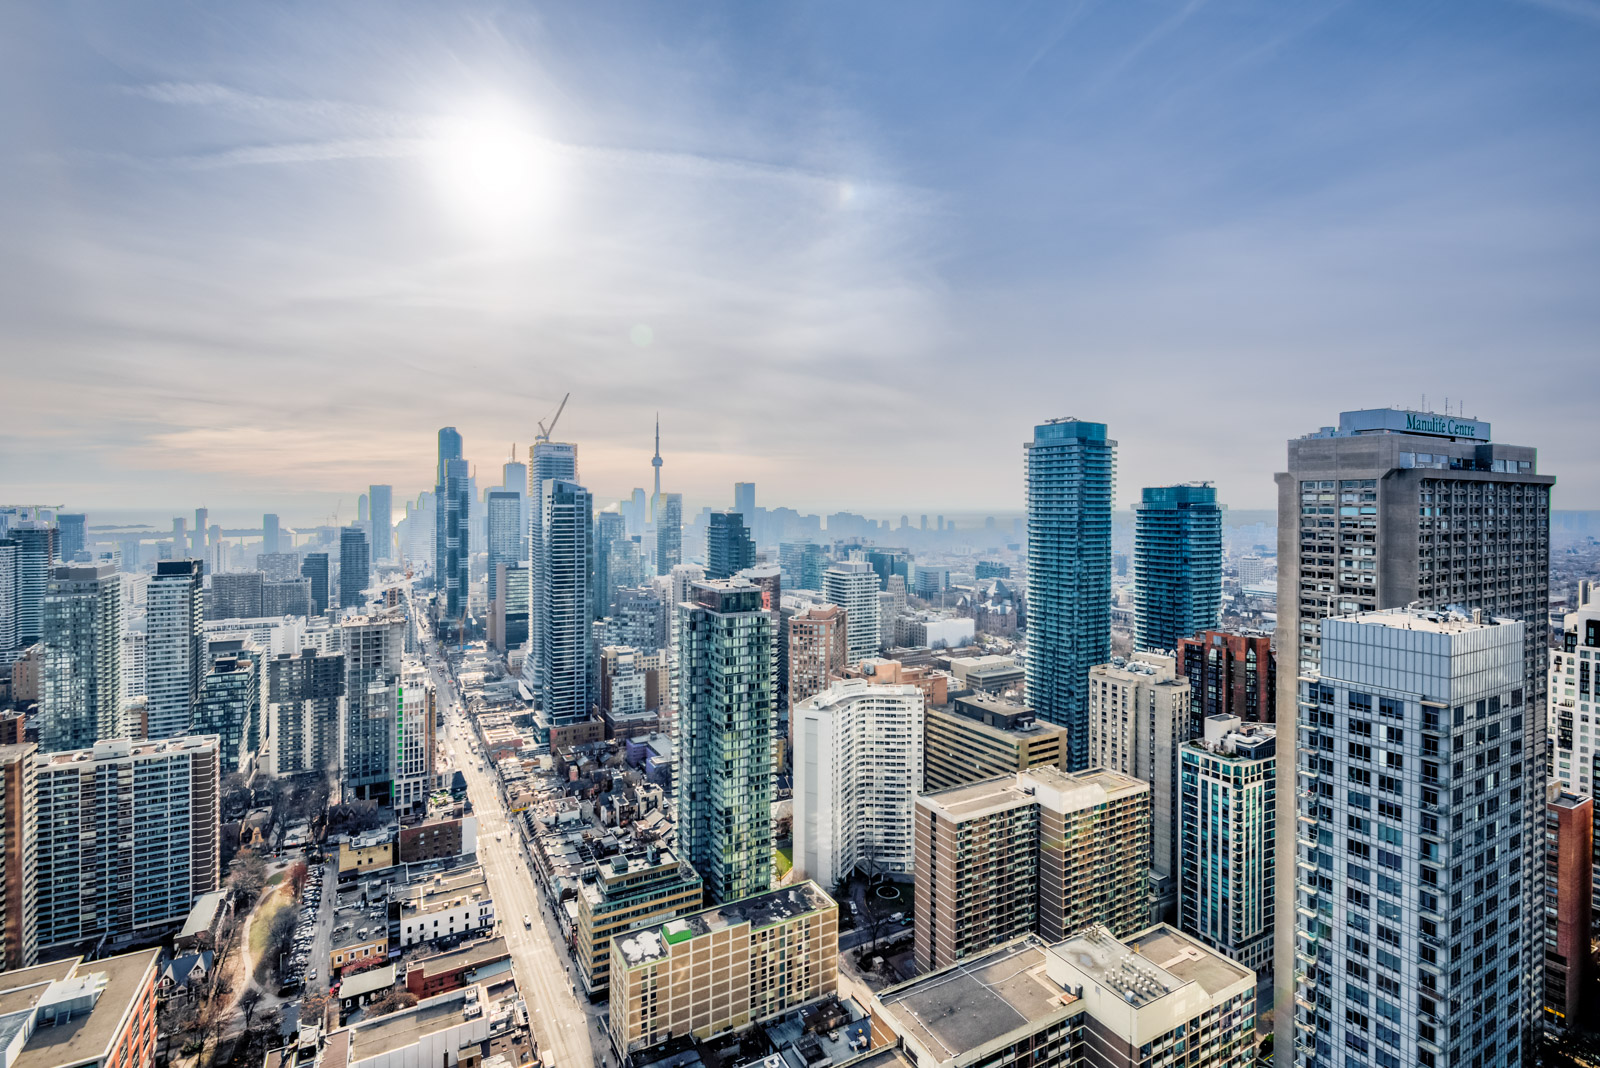 Morning; Toronto skyline showing CN Tower and streets of Yonge and Bloor.